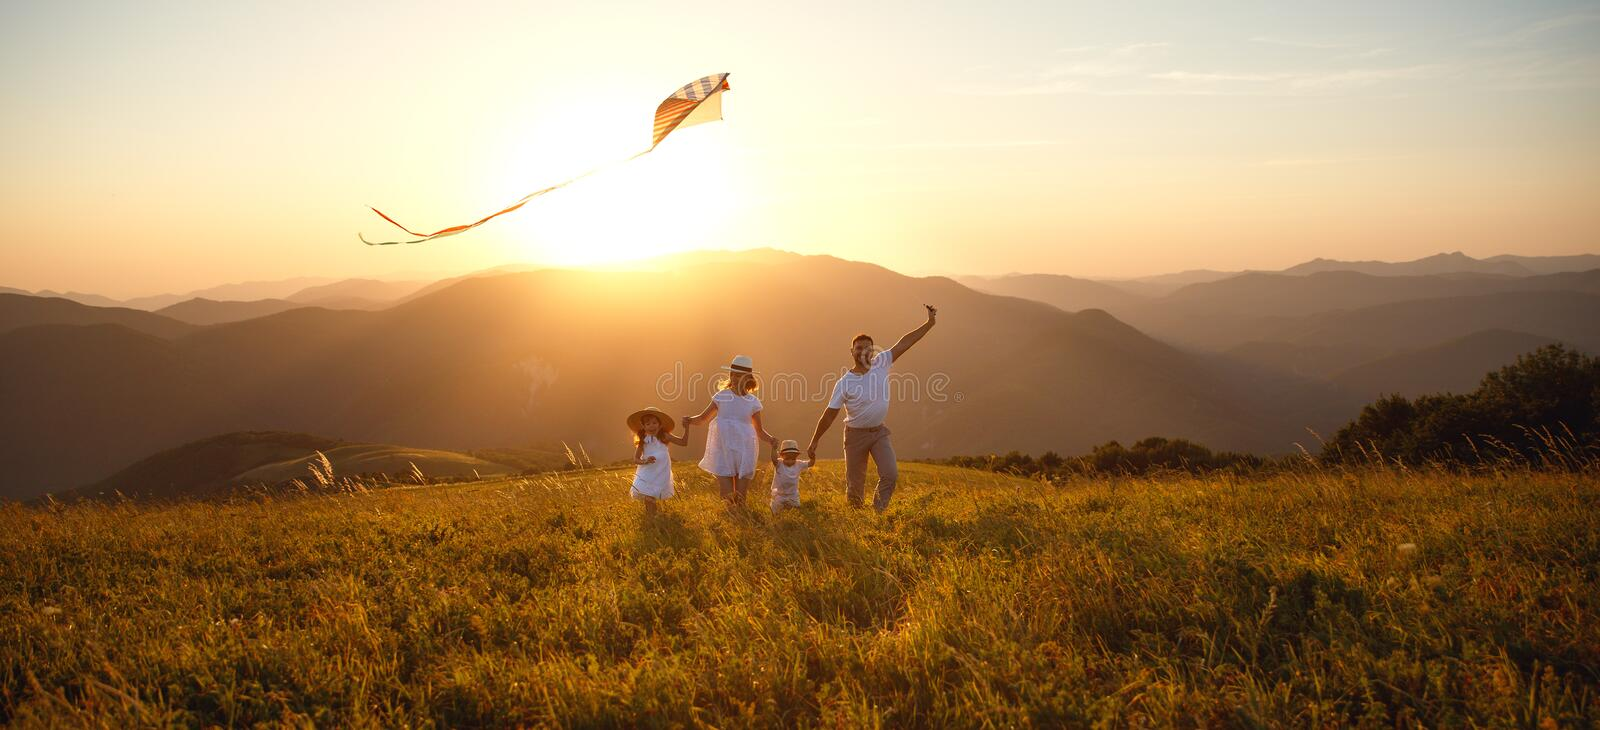 Happy family father, mother and children launch kite on nature royalty free stock photo